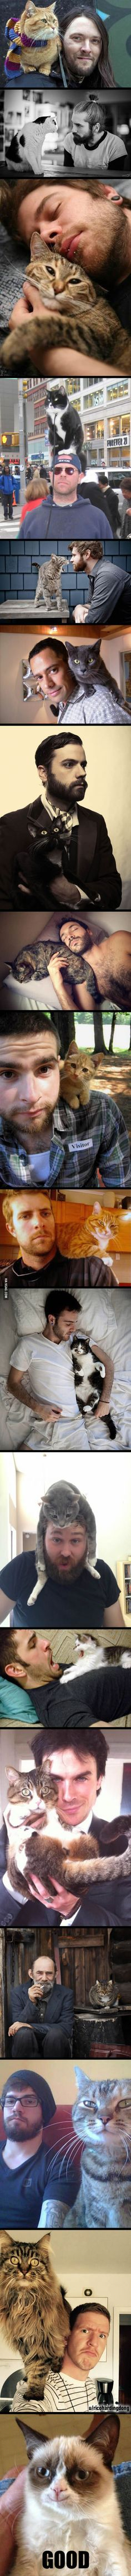 17 Pictures Show You How To Be Manly With A Cat